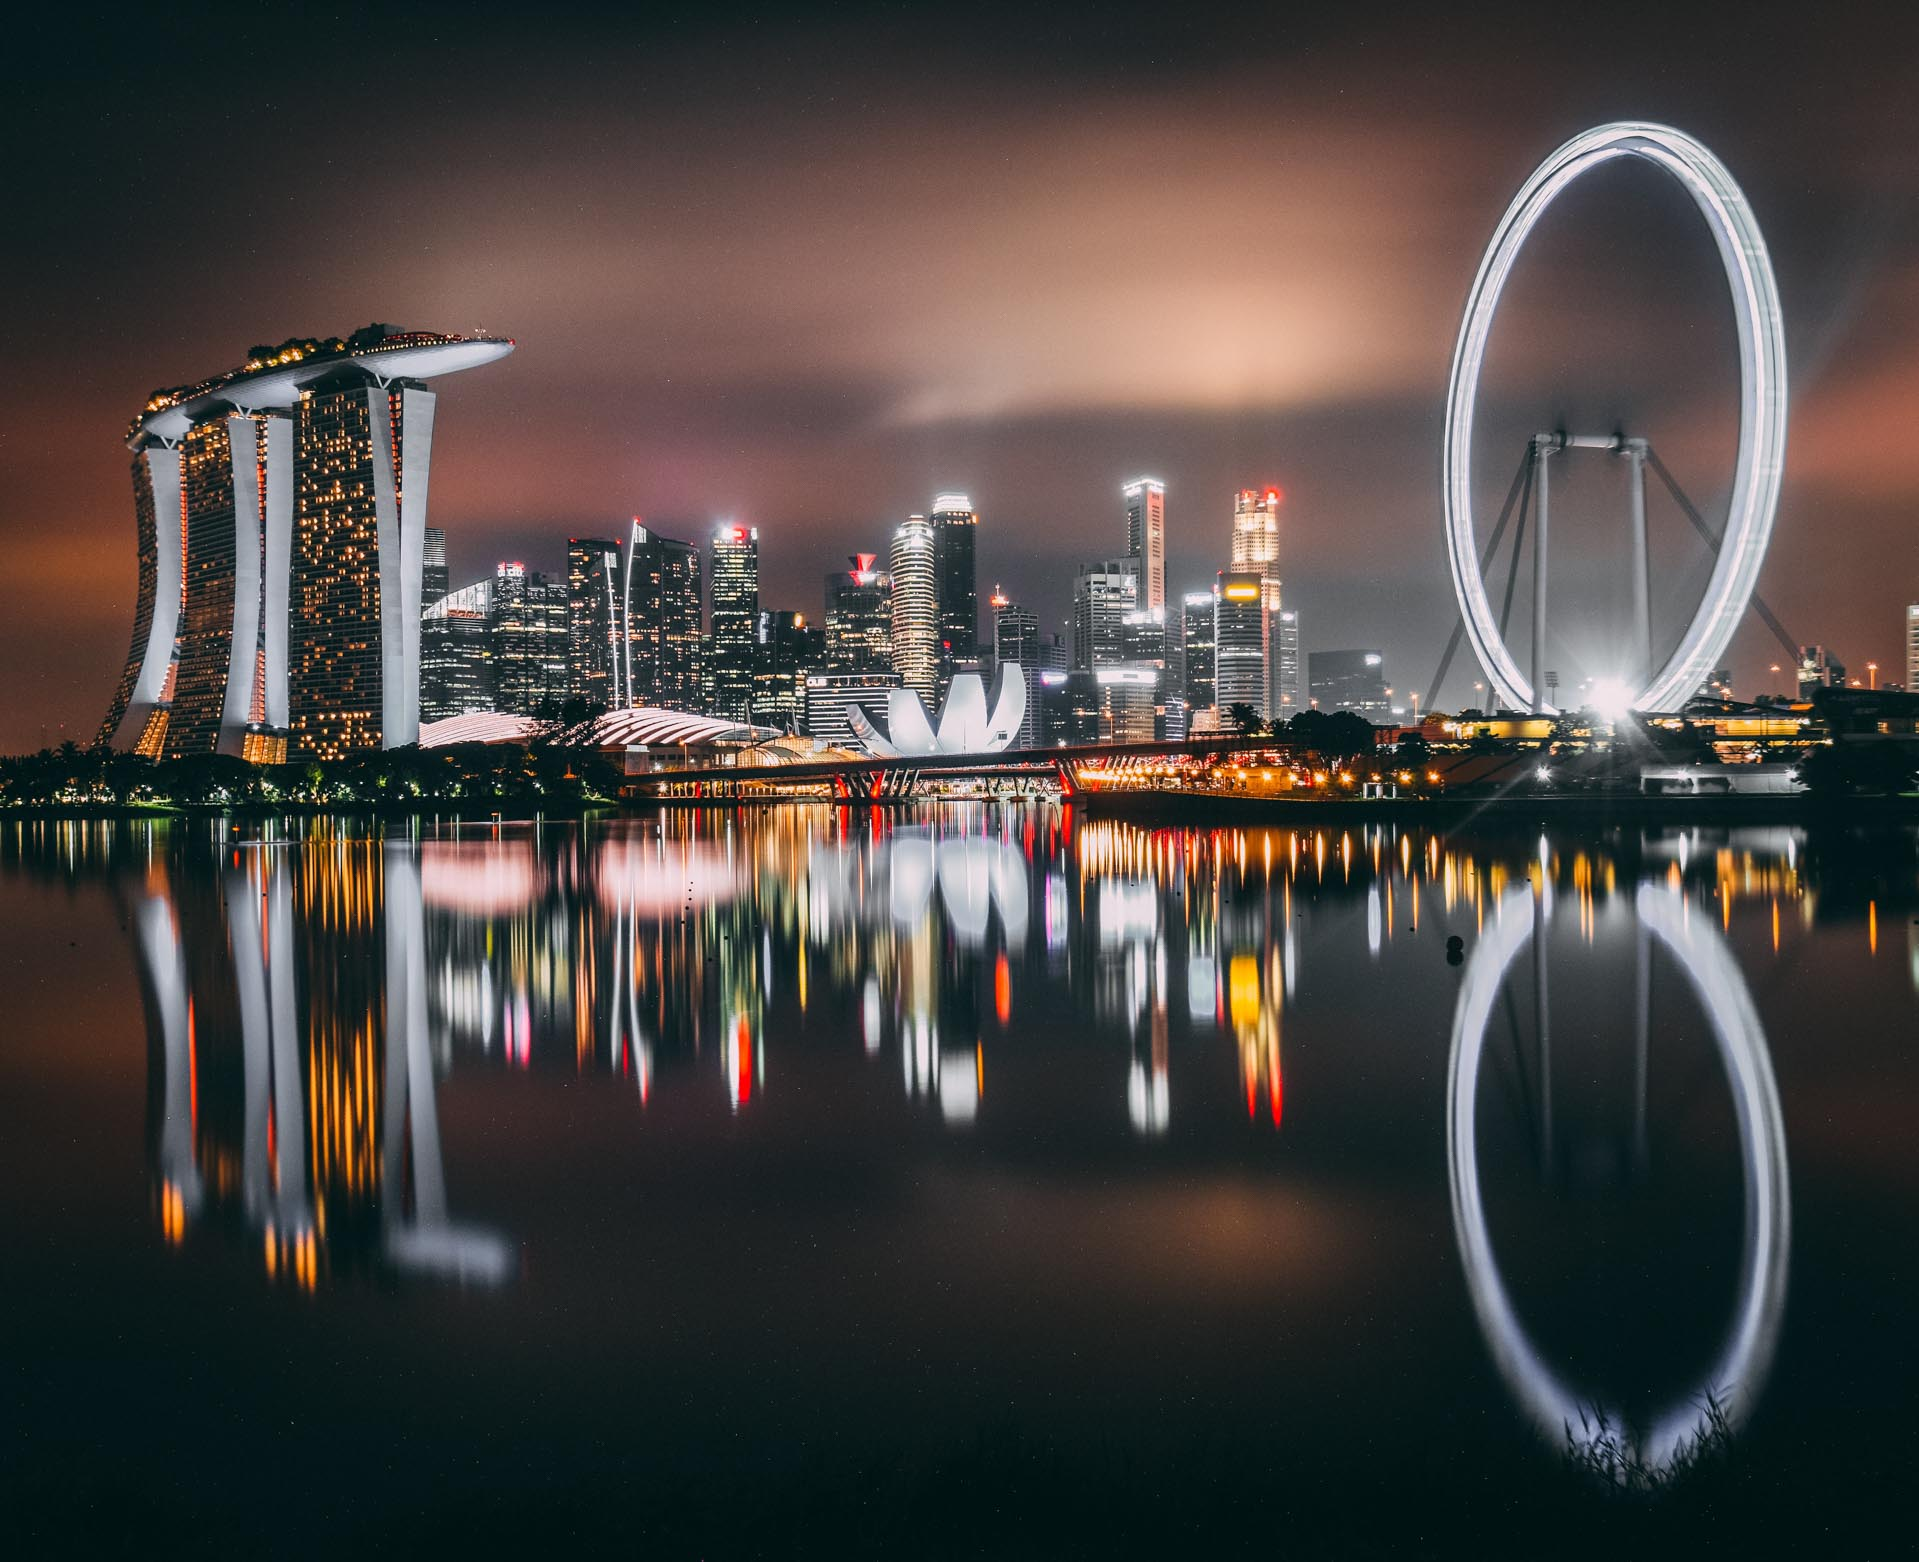 Best time to visit Singapore - View Gardens by the bay by night